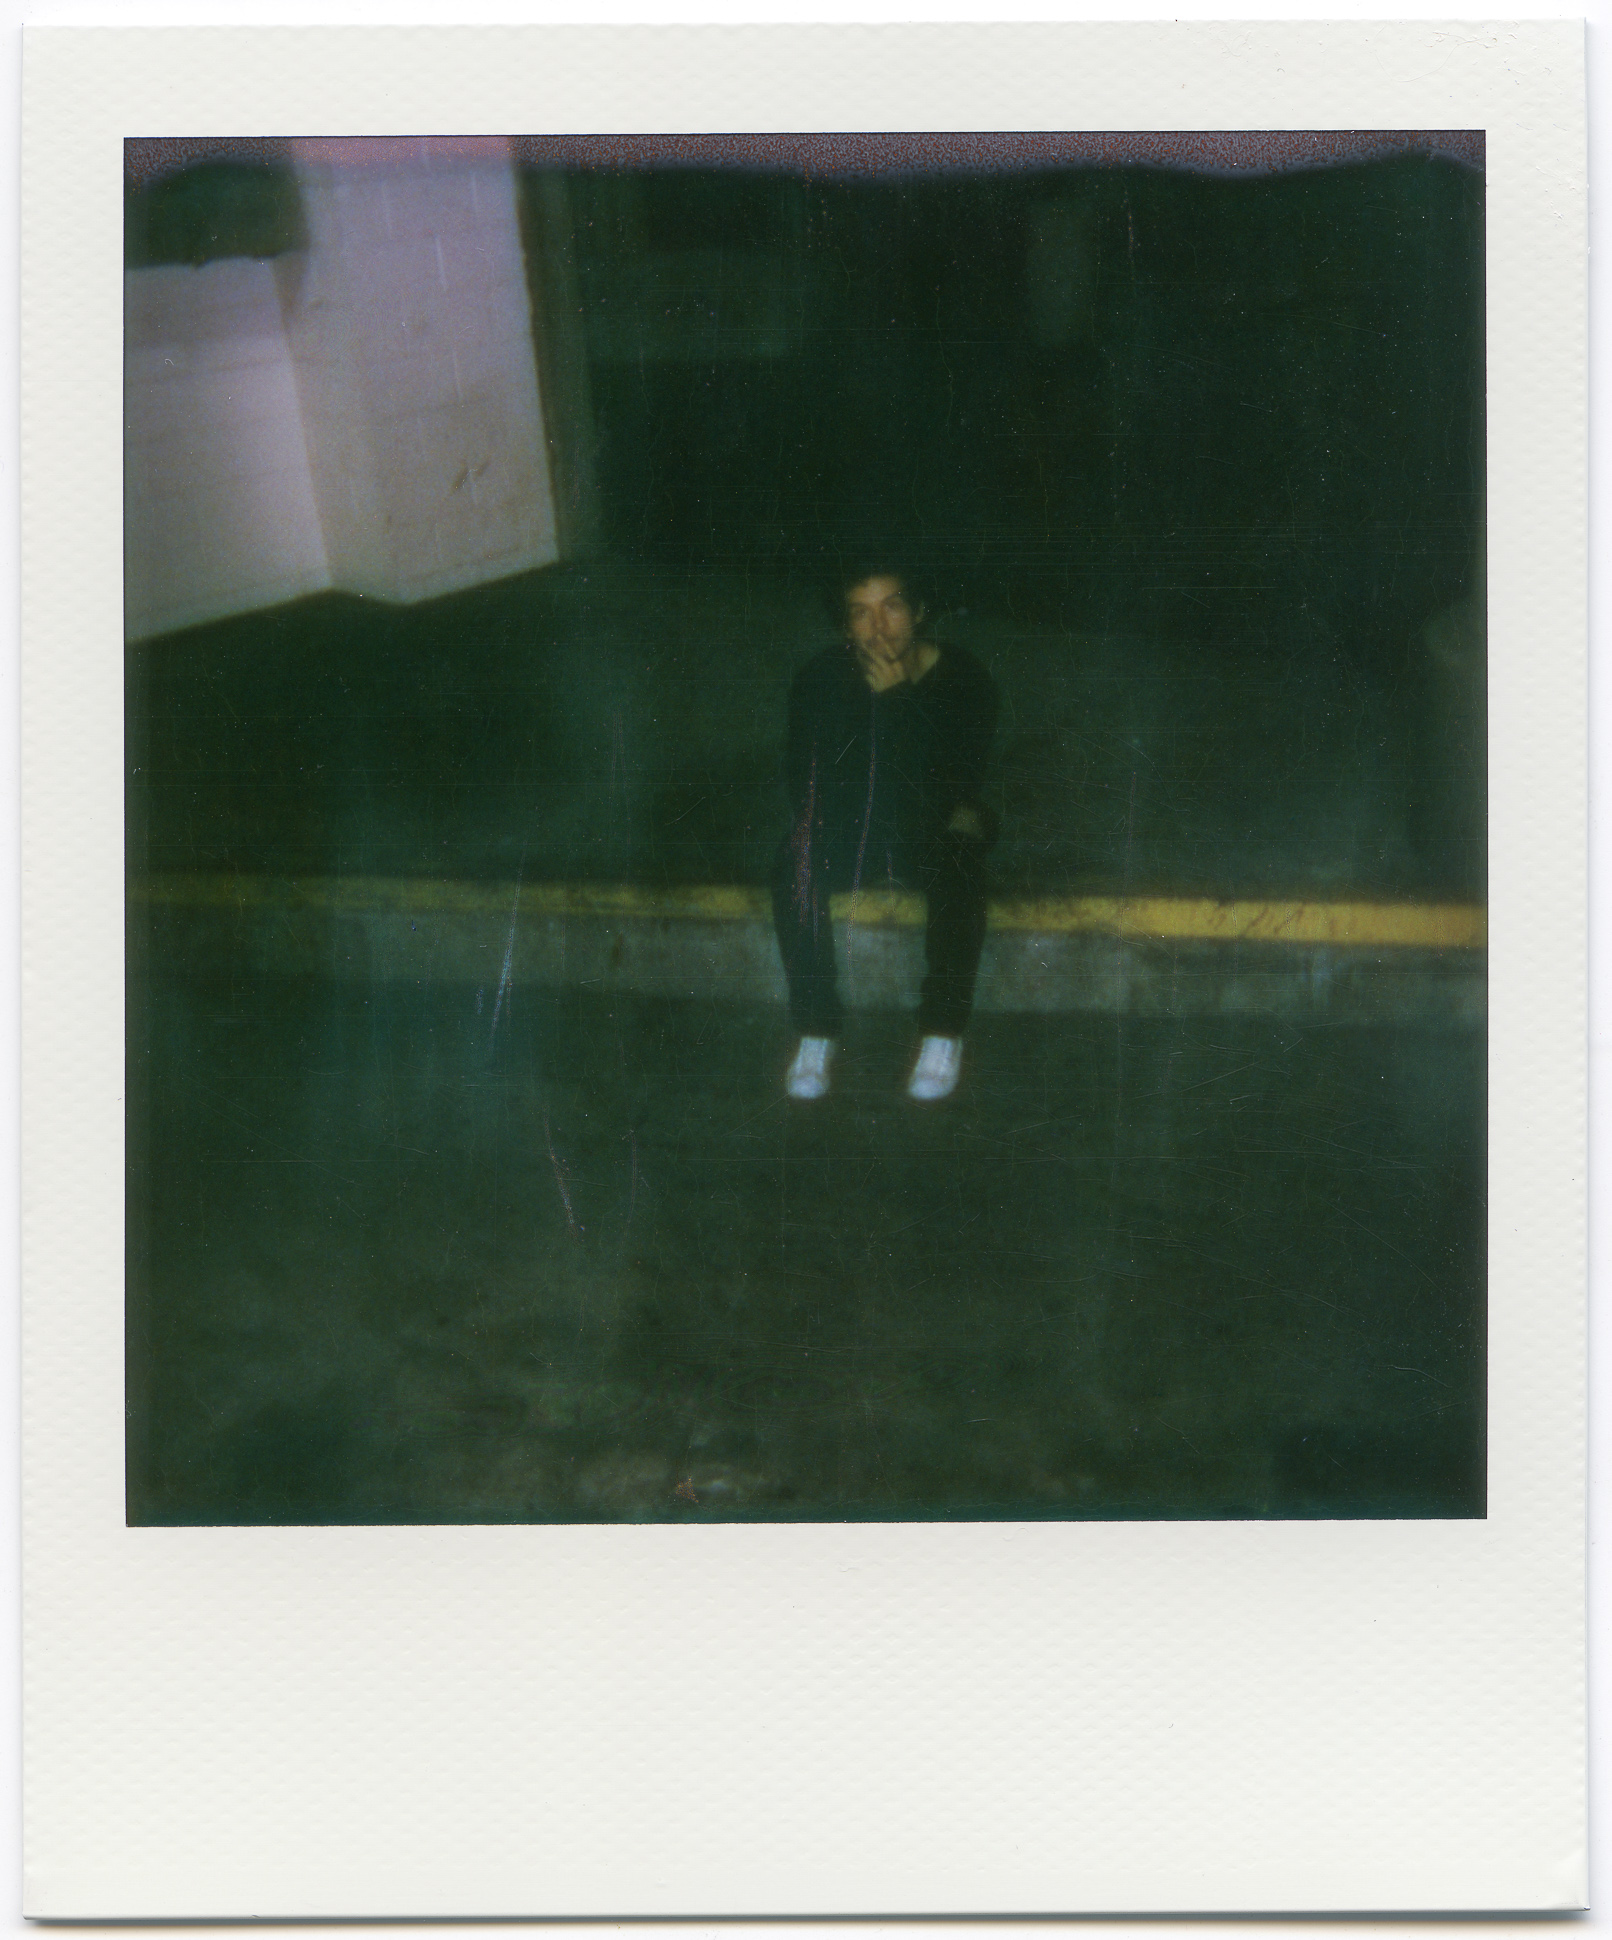 BAD CHILD-Polaroids-190904001-3.jpg